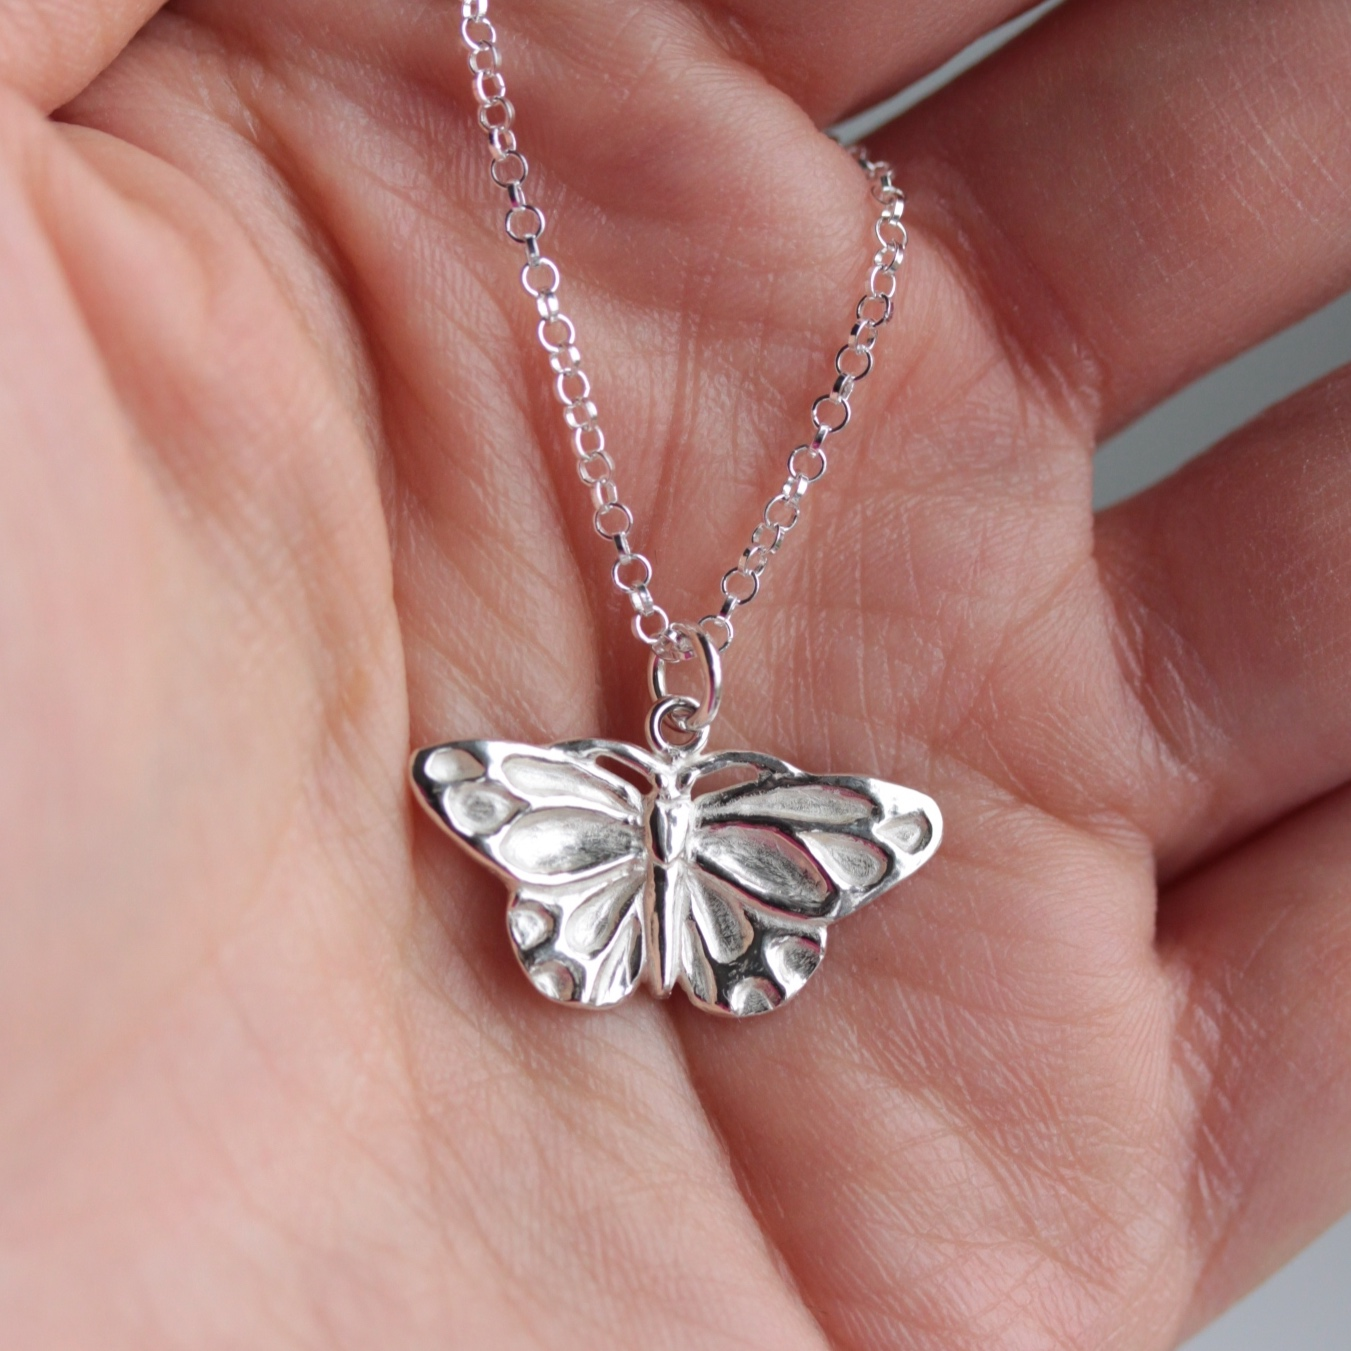 A delicate butterfly necklace was created for our client to symbolise the birth of their baby Granddaughter.